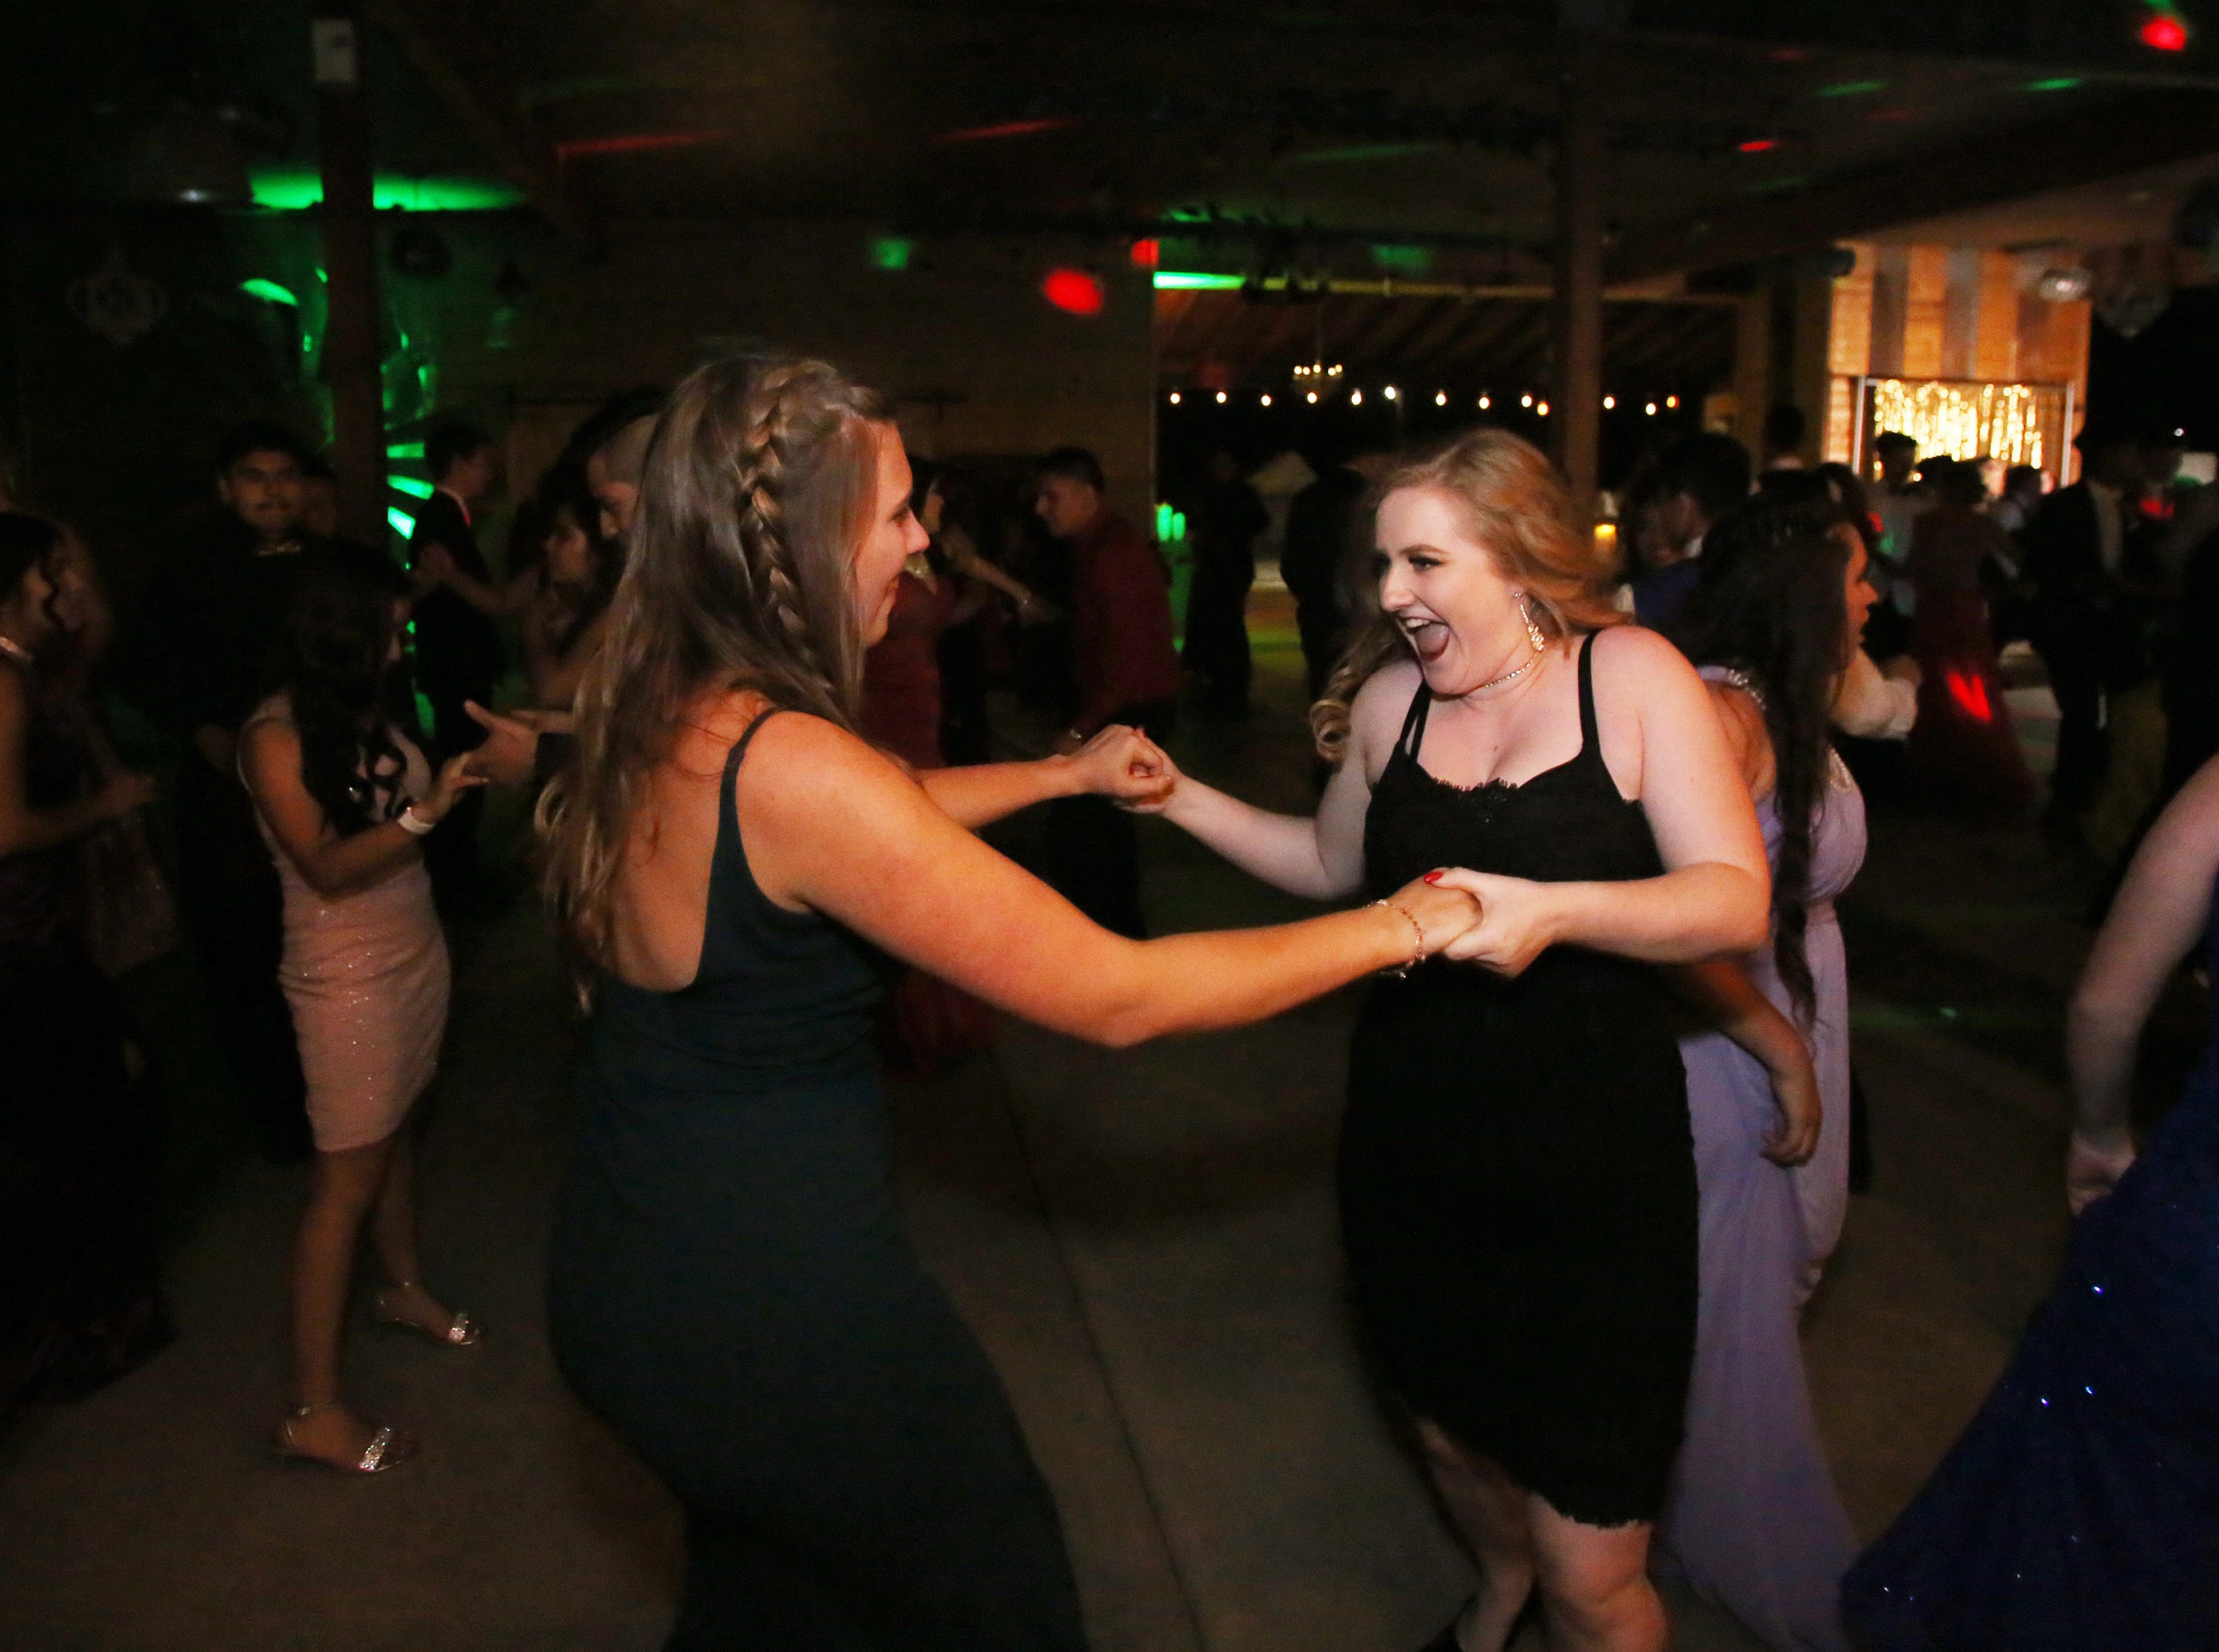 Morgan Weldon and Morgan Dougherty have fun at the Exeter Union High School prom Saturday, May 4, 2019 in Woodlake, Calif.